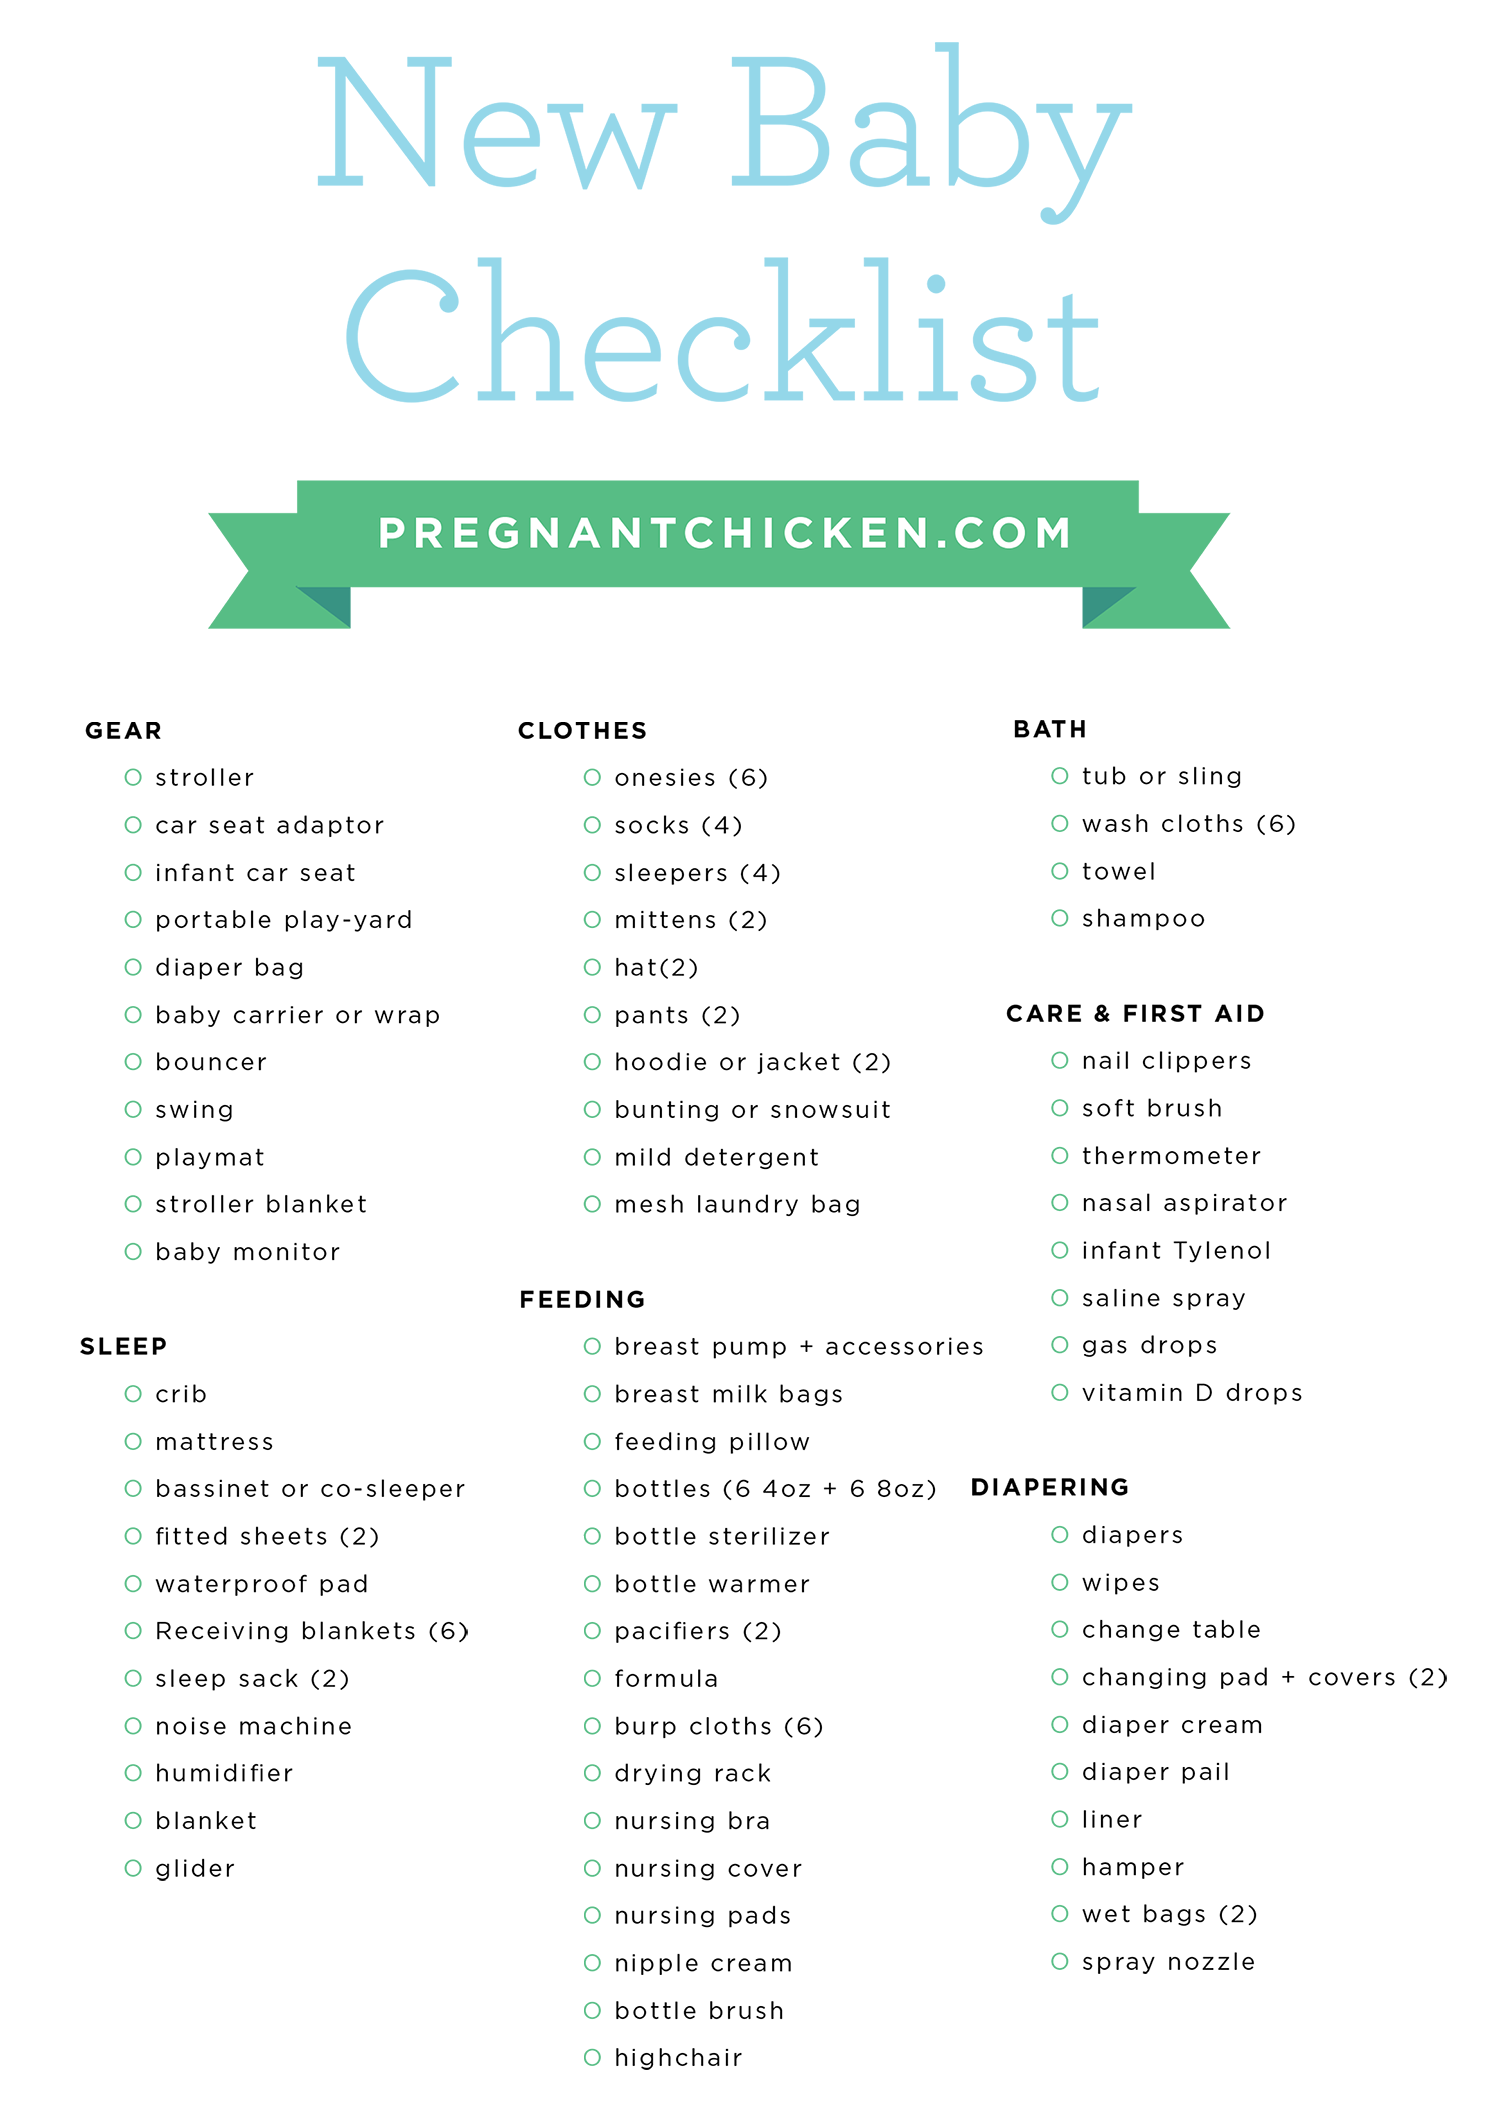 Baby Registry Checklist Pdf - a complete checklist of all the essential items you'll need to prepare for a baby - it even includes newborn gear guides and suggestions to fit every budget!